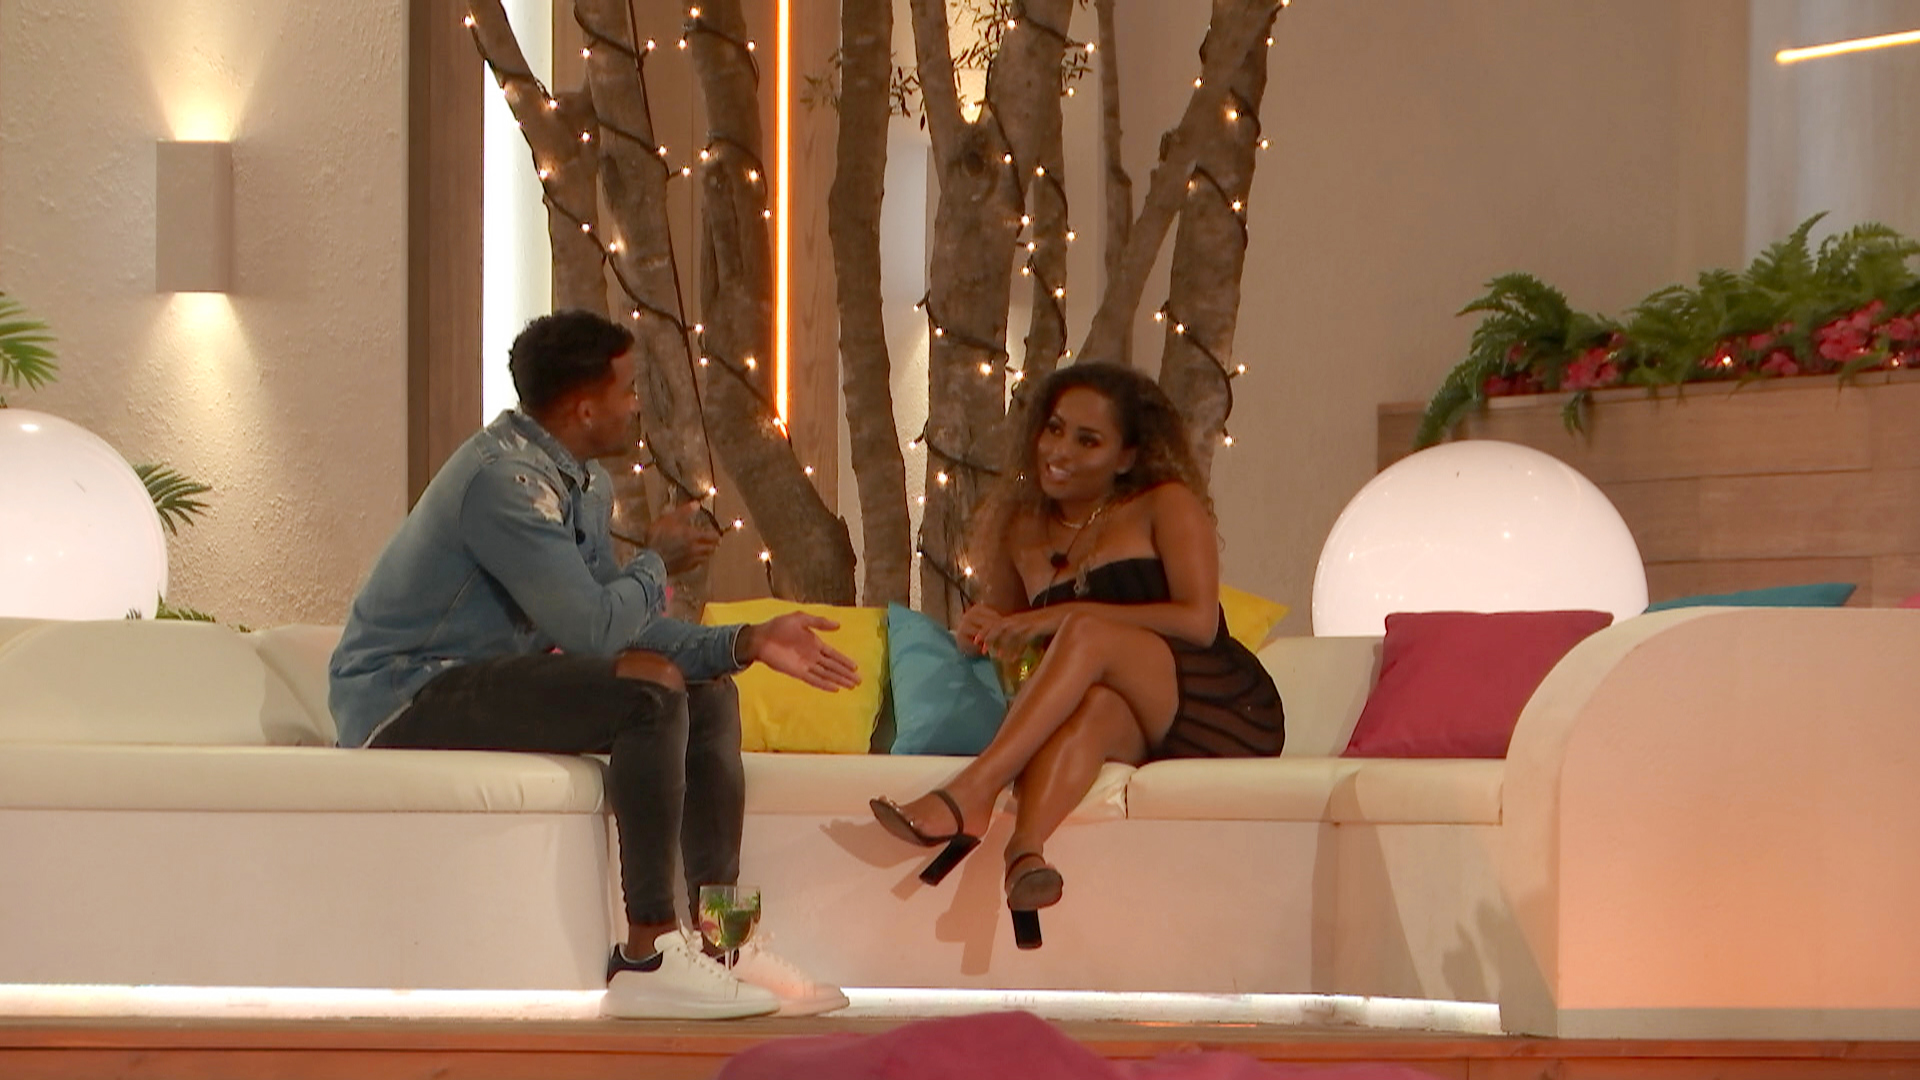 Love Island SPOILER: Confused Amber torn as Michael confesses his feelings and KISSES her